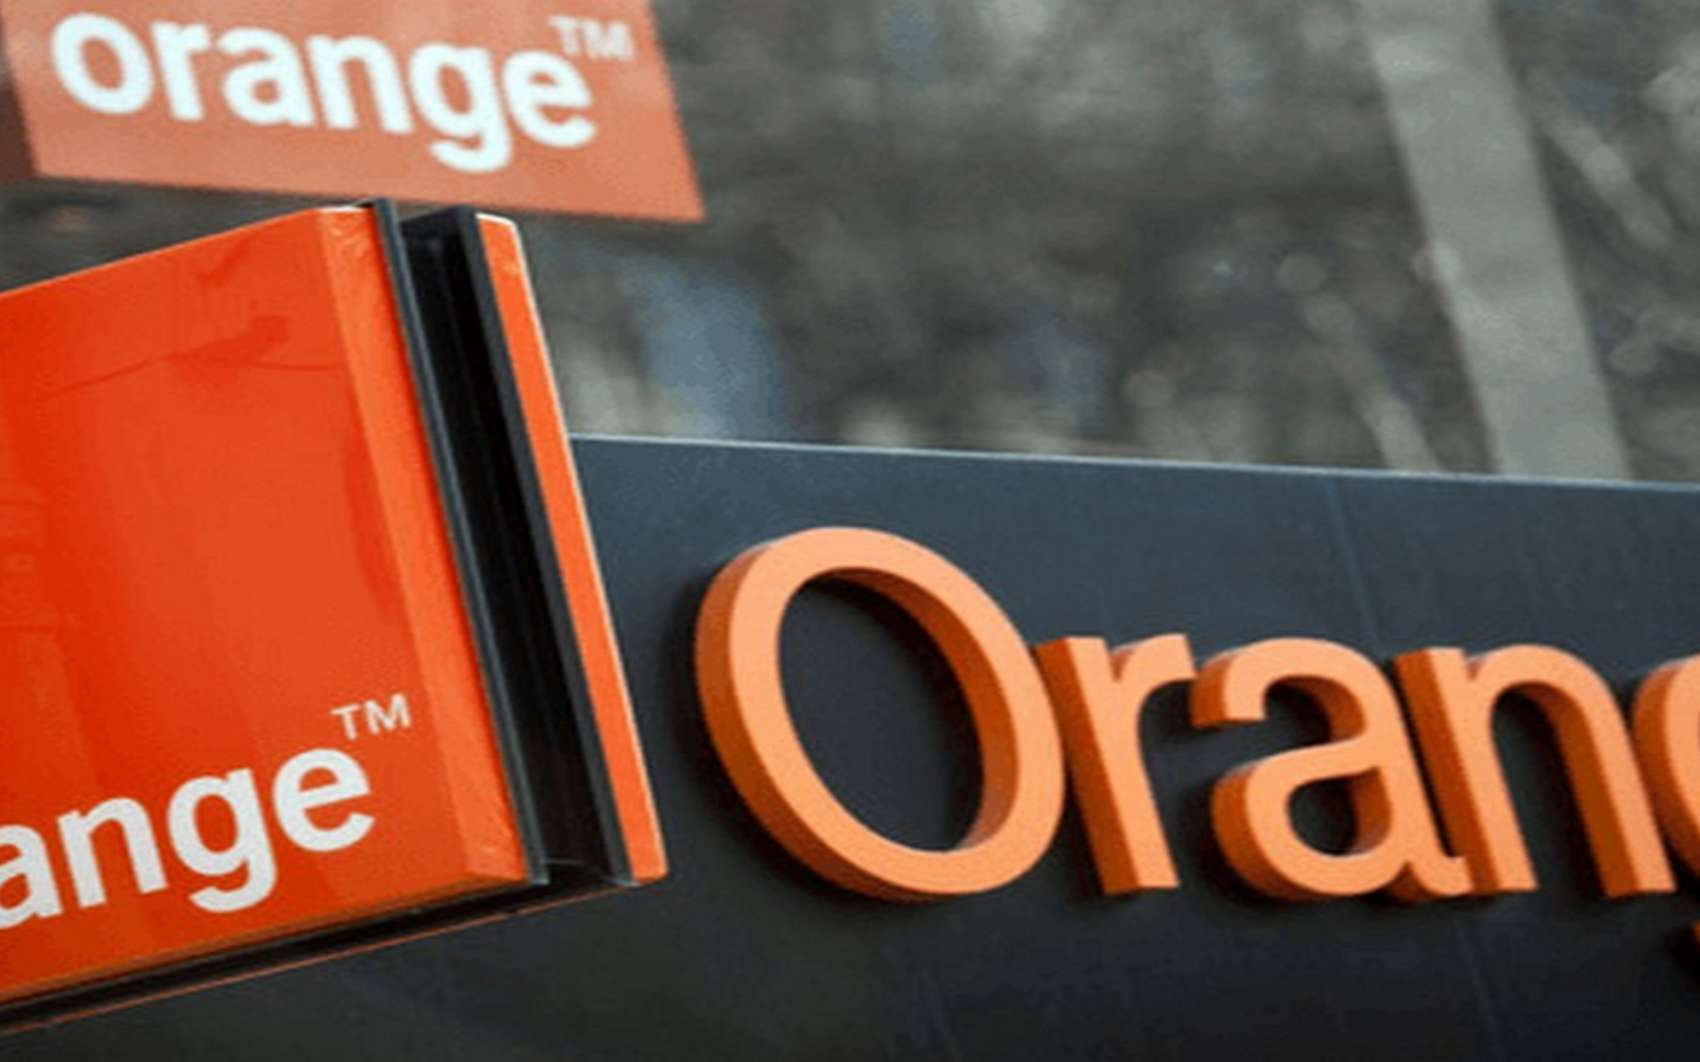 Orange meilleur débit internet fixe © Orange